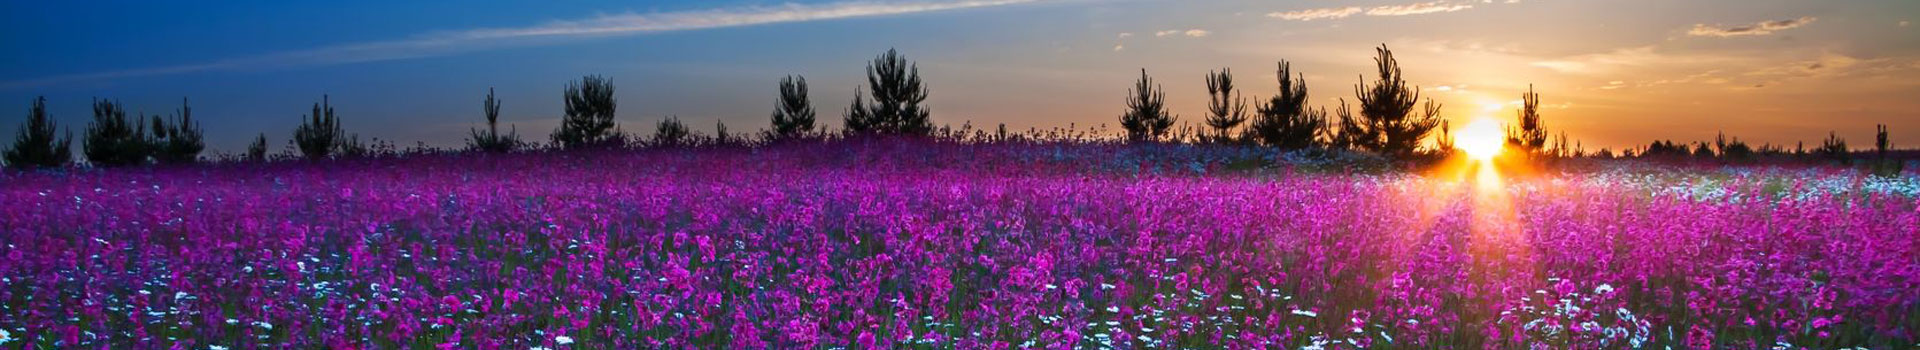 hypnotherapy sunrise blossomin field